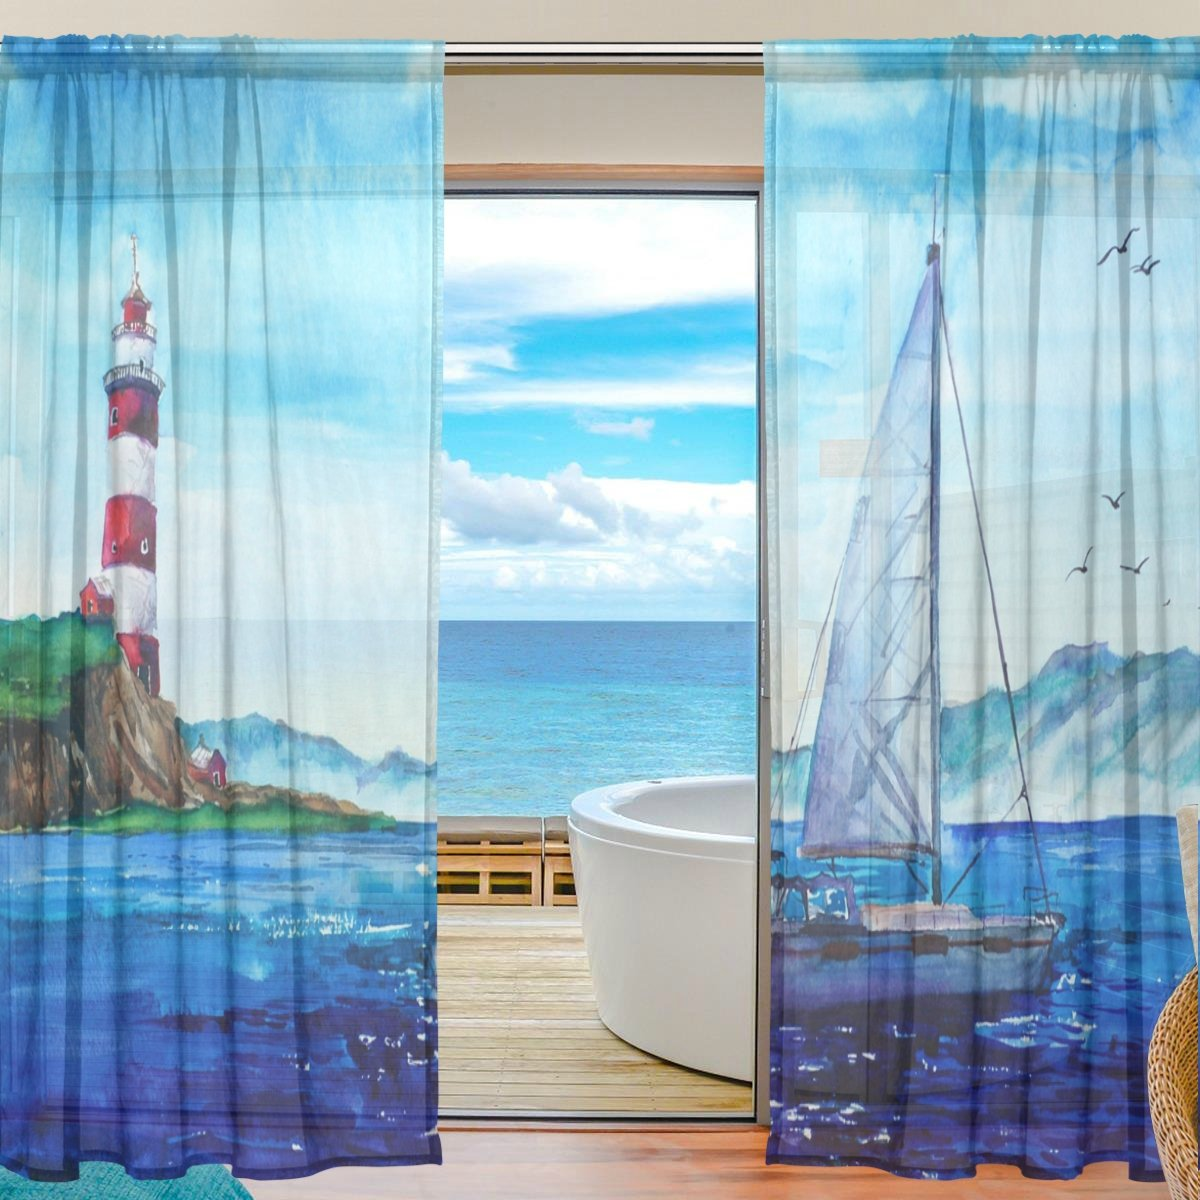 SEULIFE Window Sheer Curtain, Ocean Sea Lighthouse Ship Voile Curtain Drapes for Door Kitchen Living Room Bedroom 55x78 inches 2 Panels g4539224p113c127s169